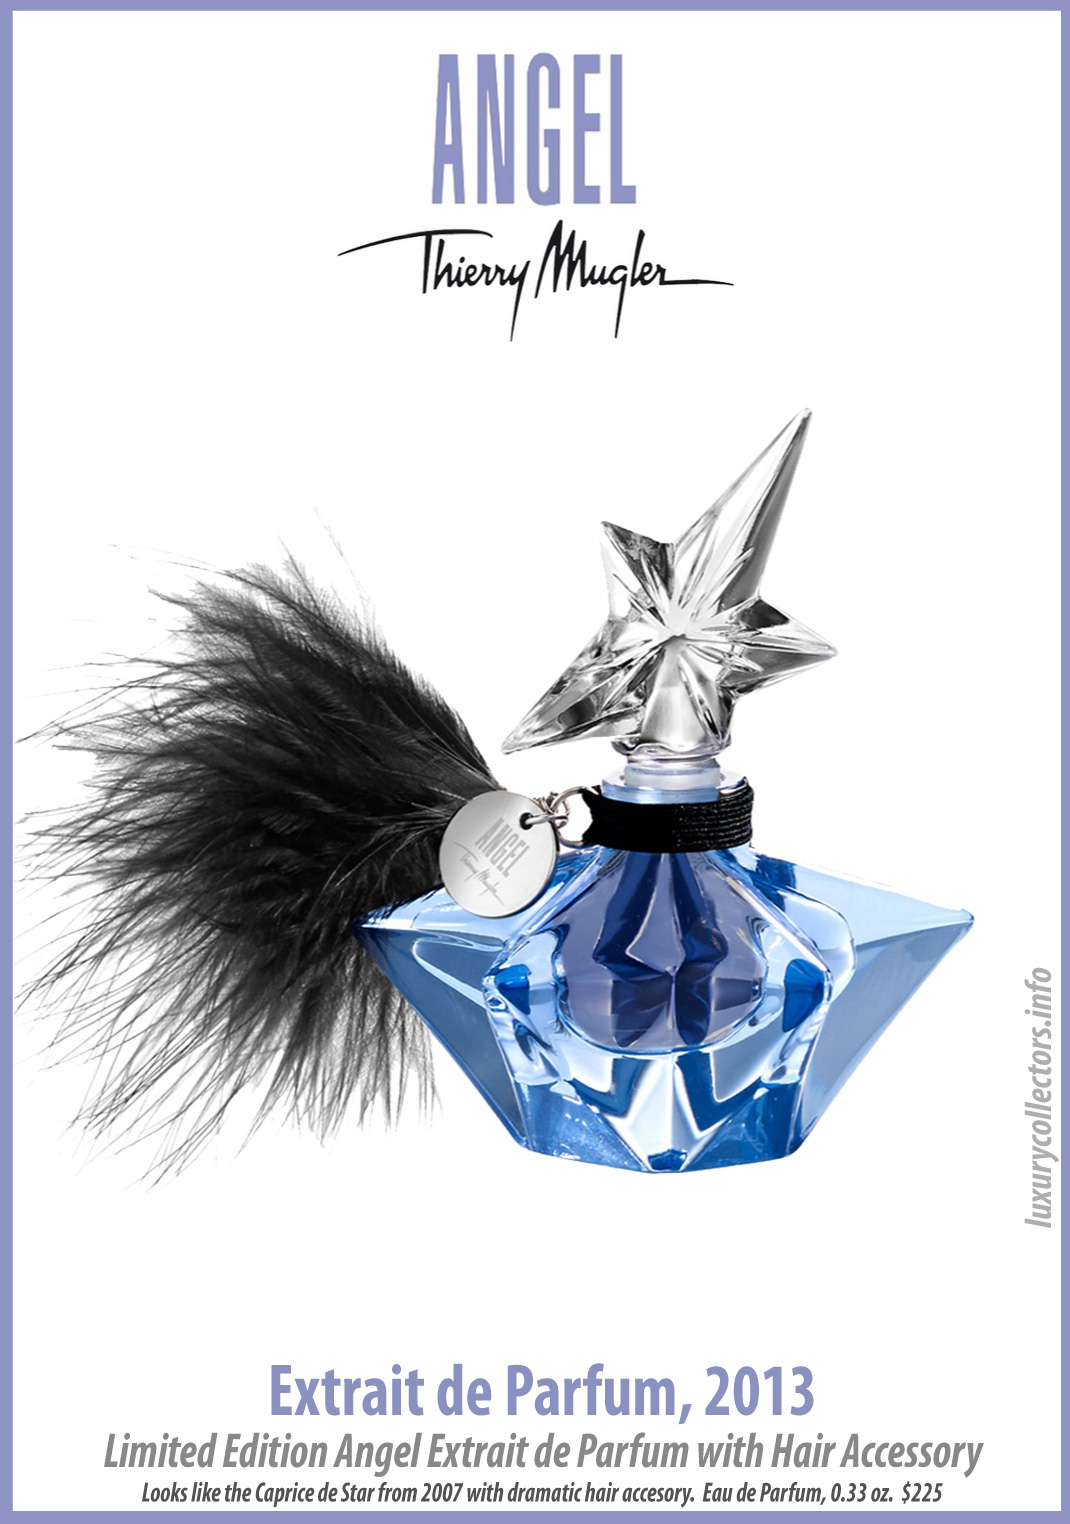 Thierry Mugler Angel Perfume Collector's Limited Edition Bottle 2013 Extrait de Parfum Hair Accesory